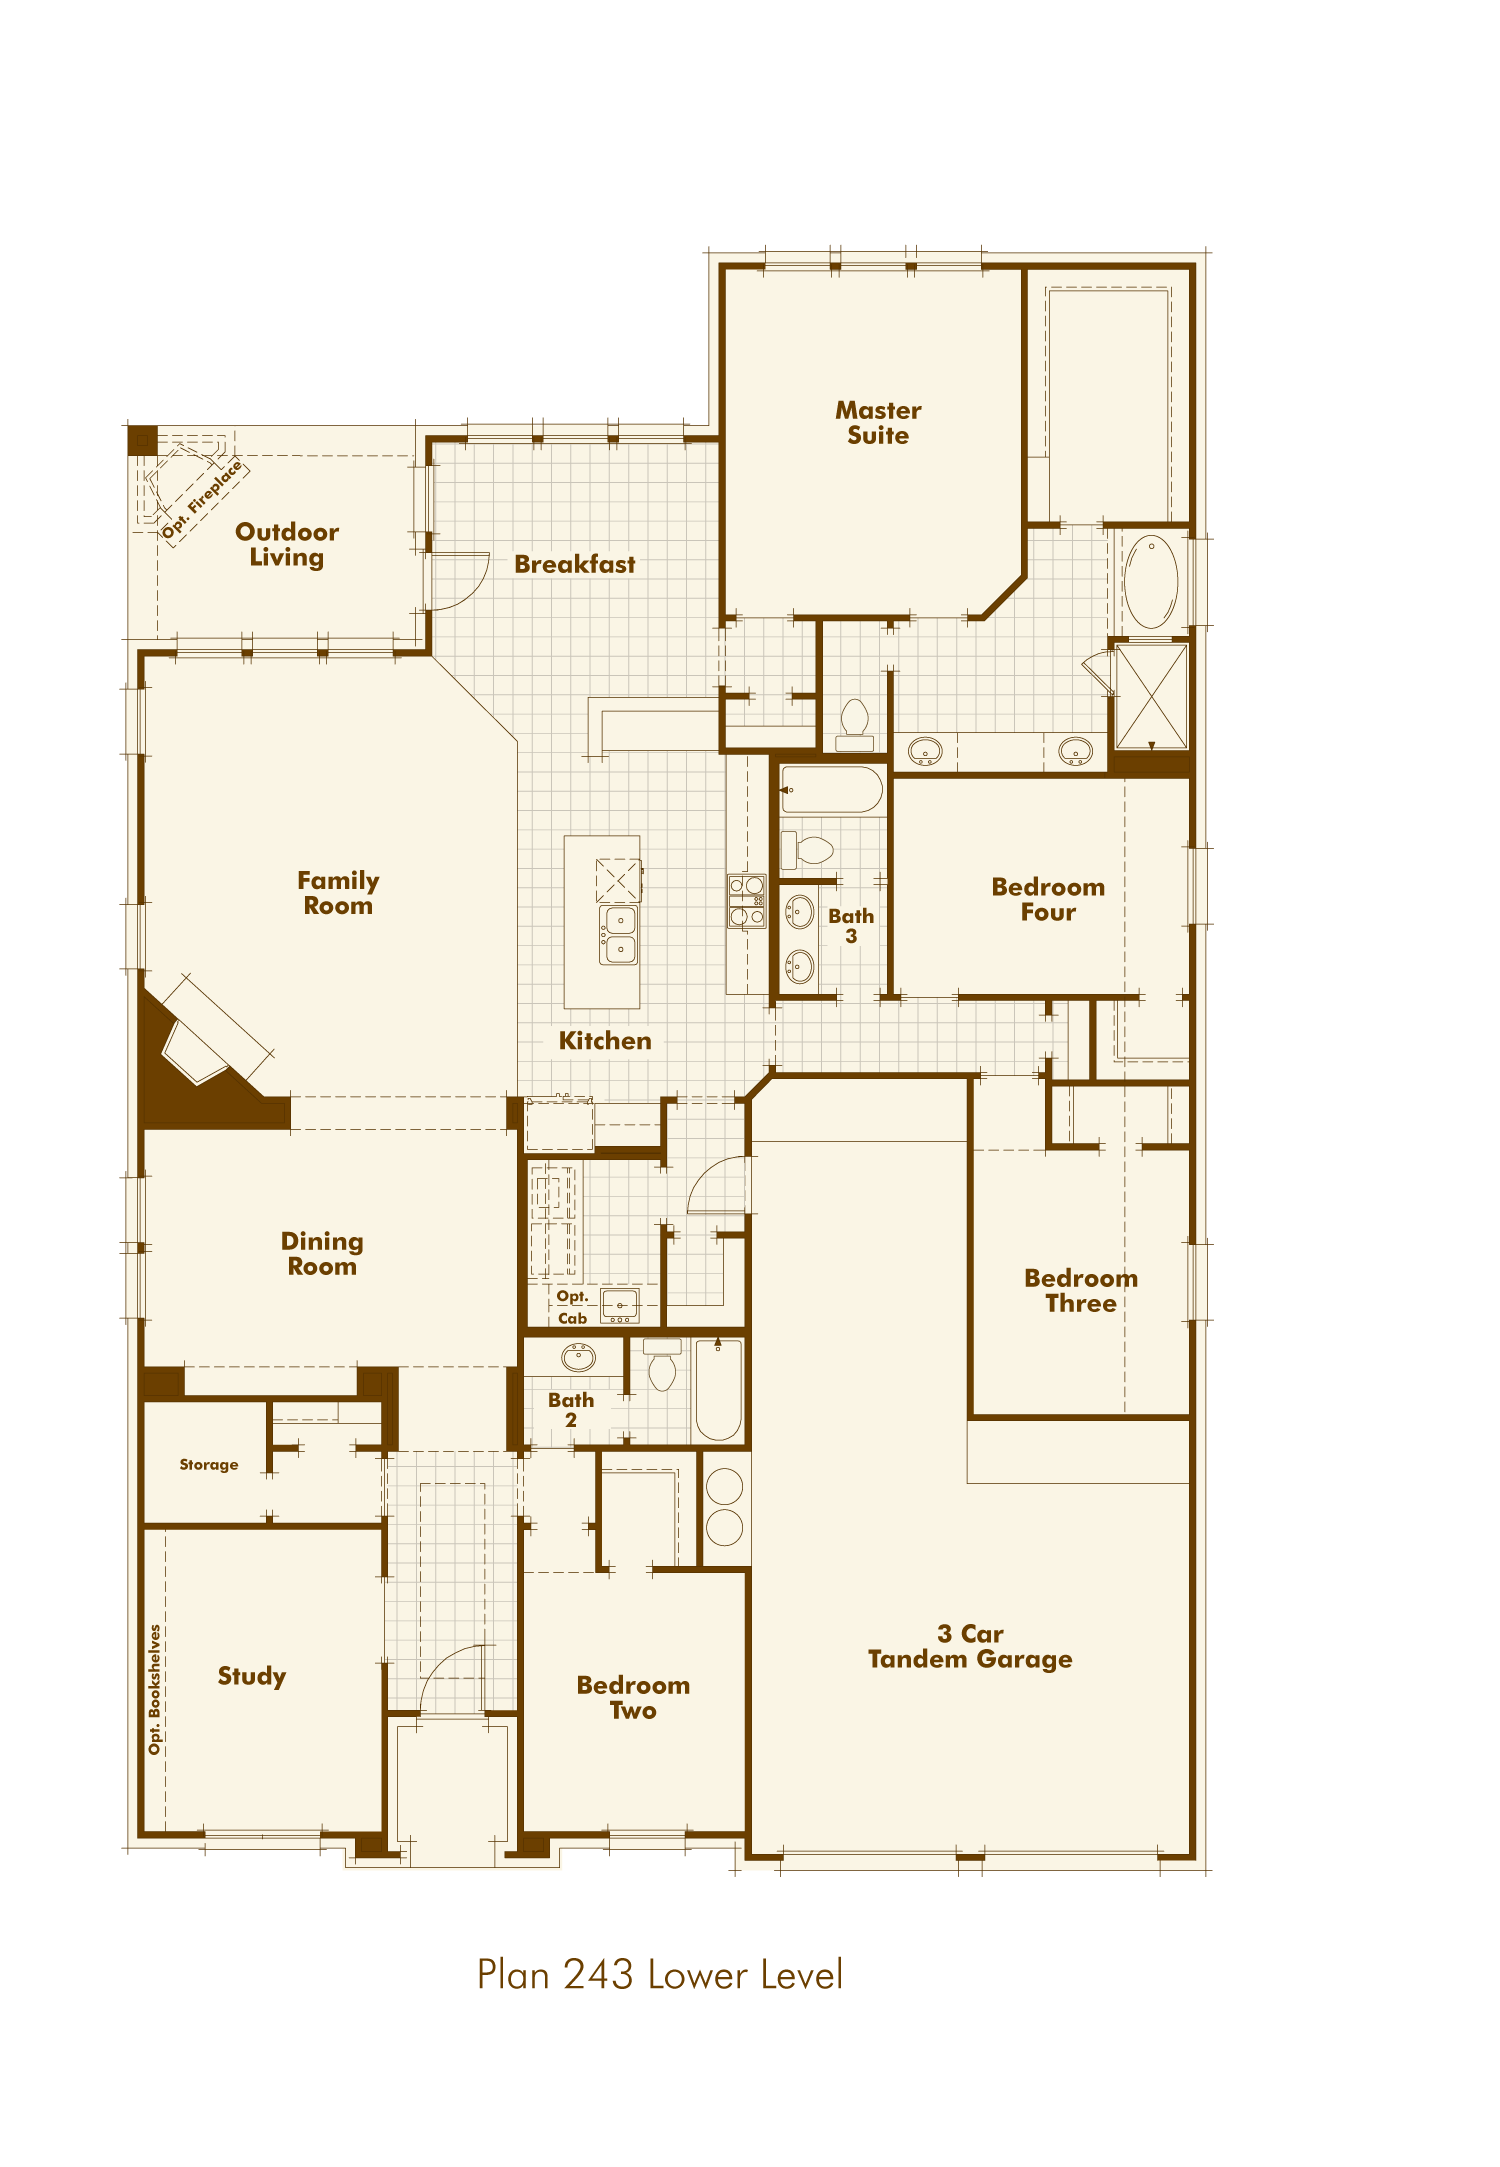 Create And Configure Your Plan Downstairs With Stairs Media Room Powder